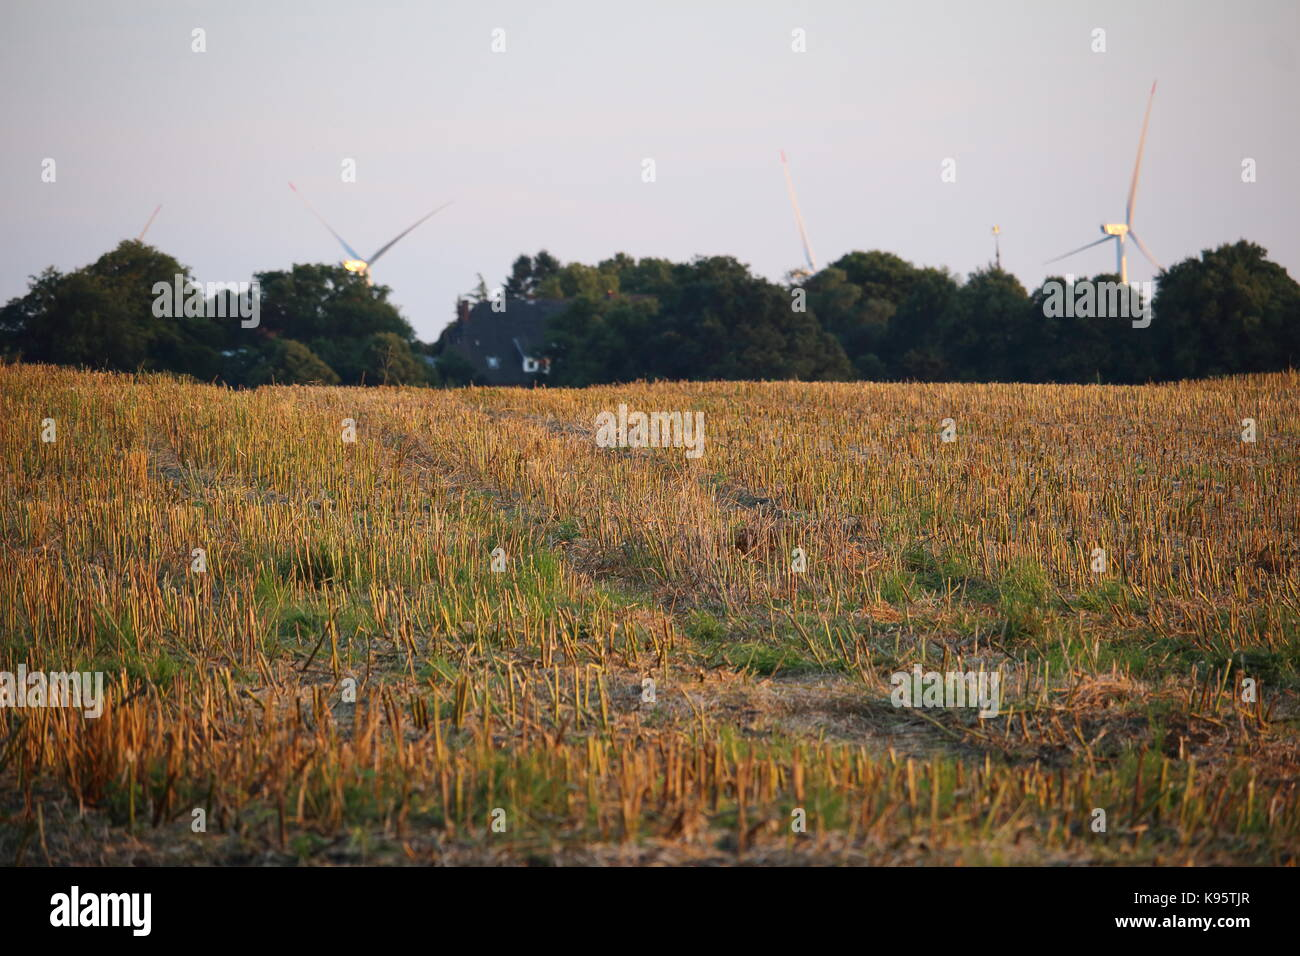 Field in the evening sun - Stock Image